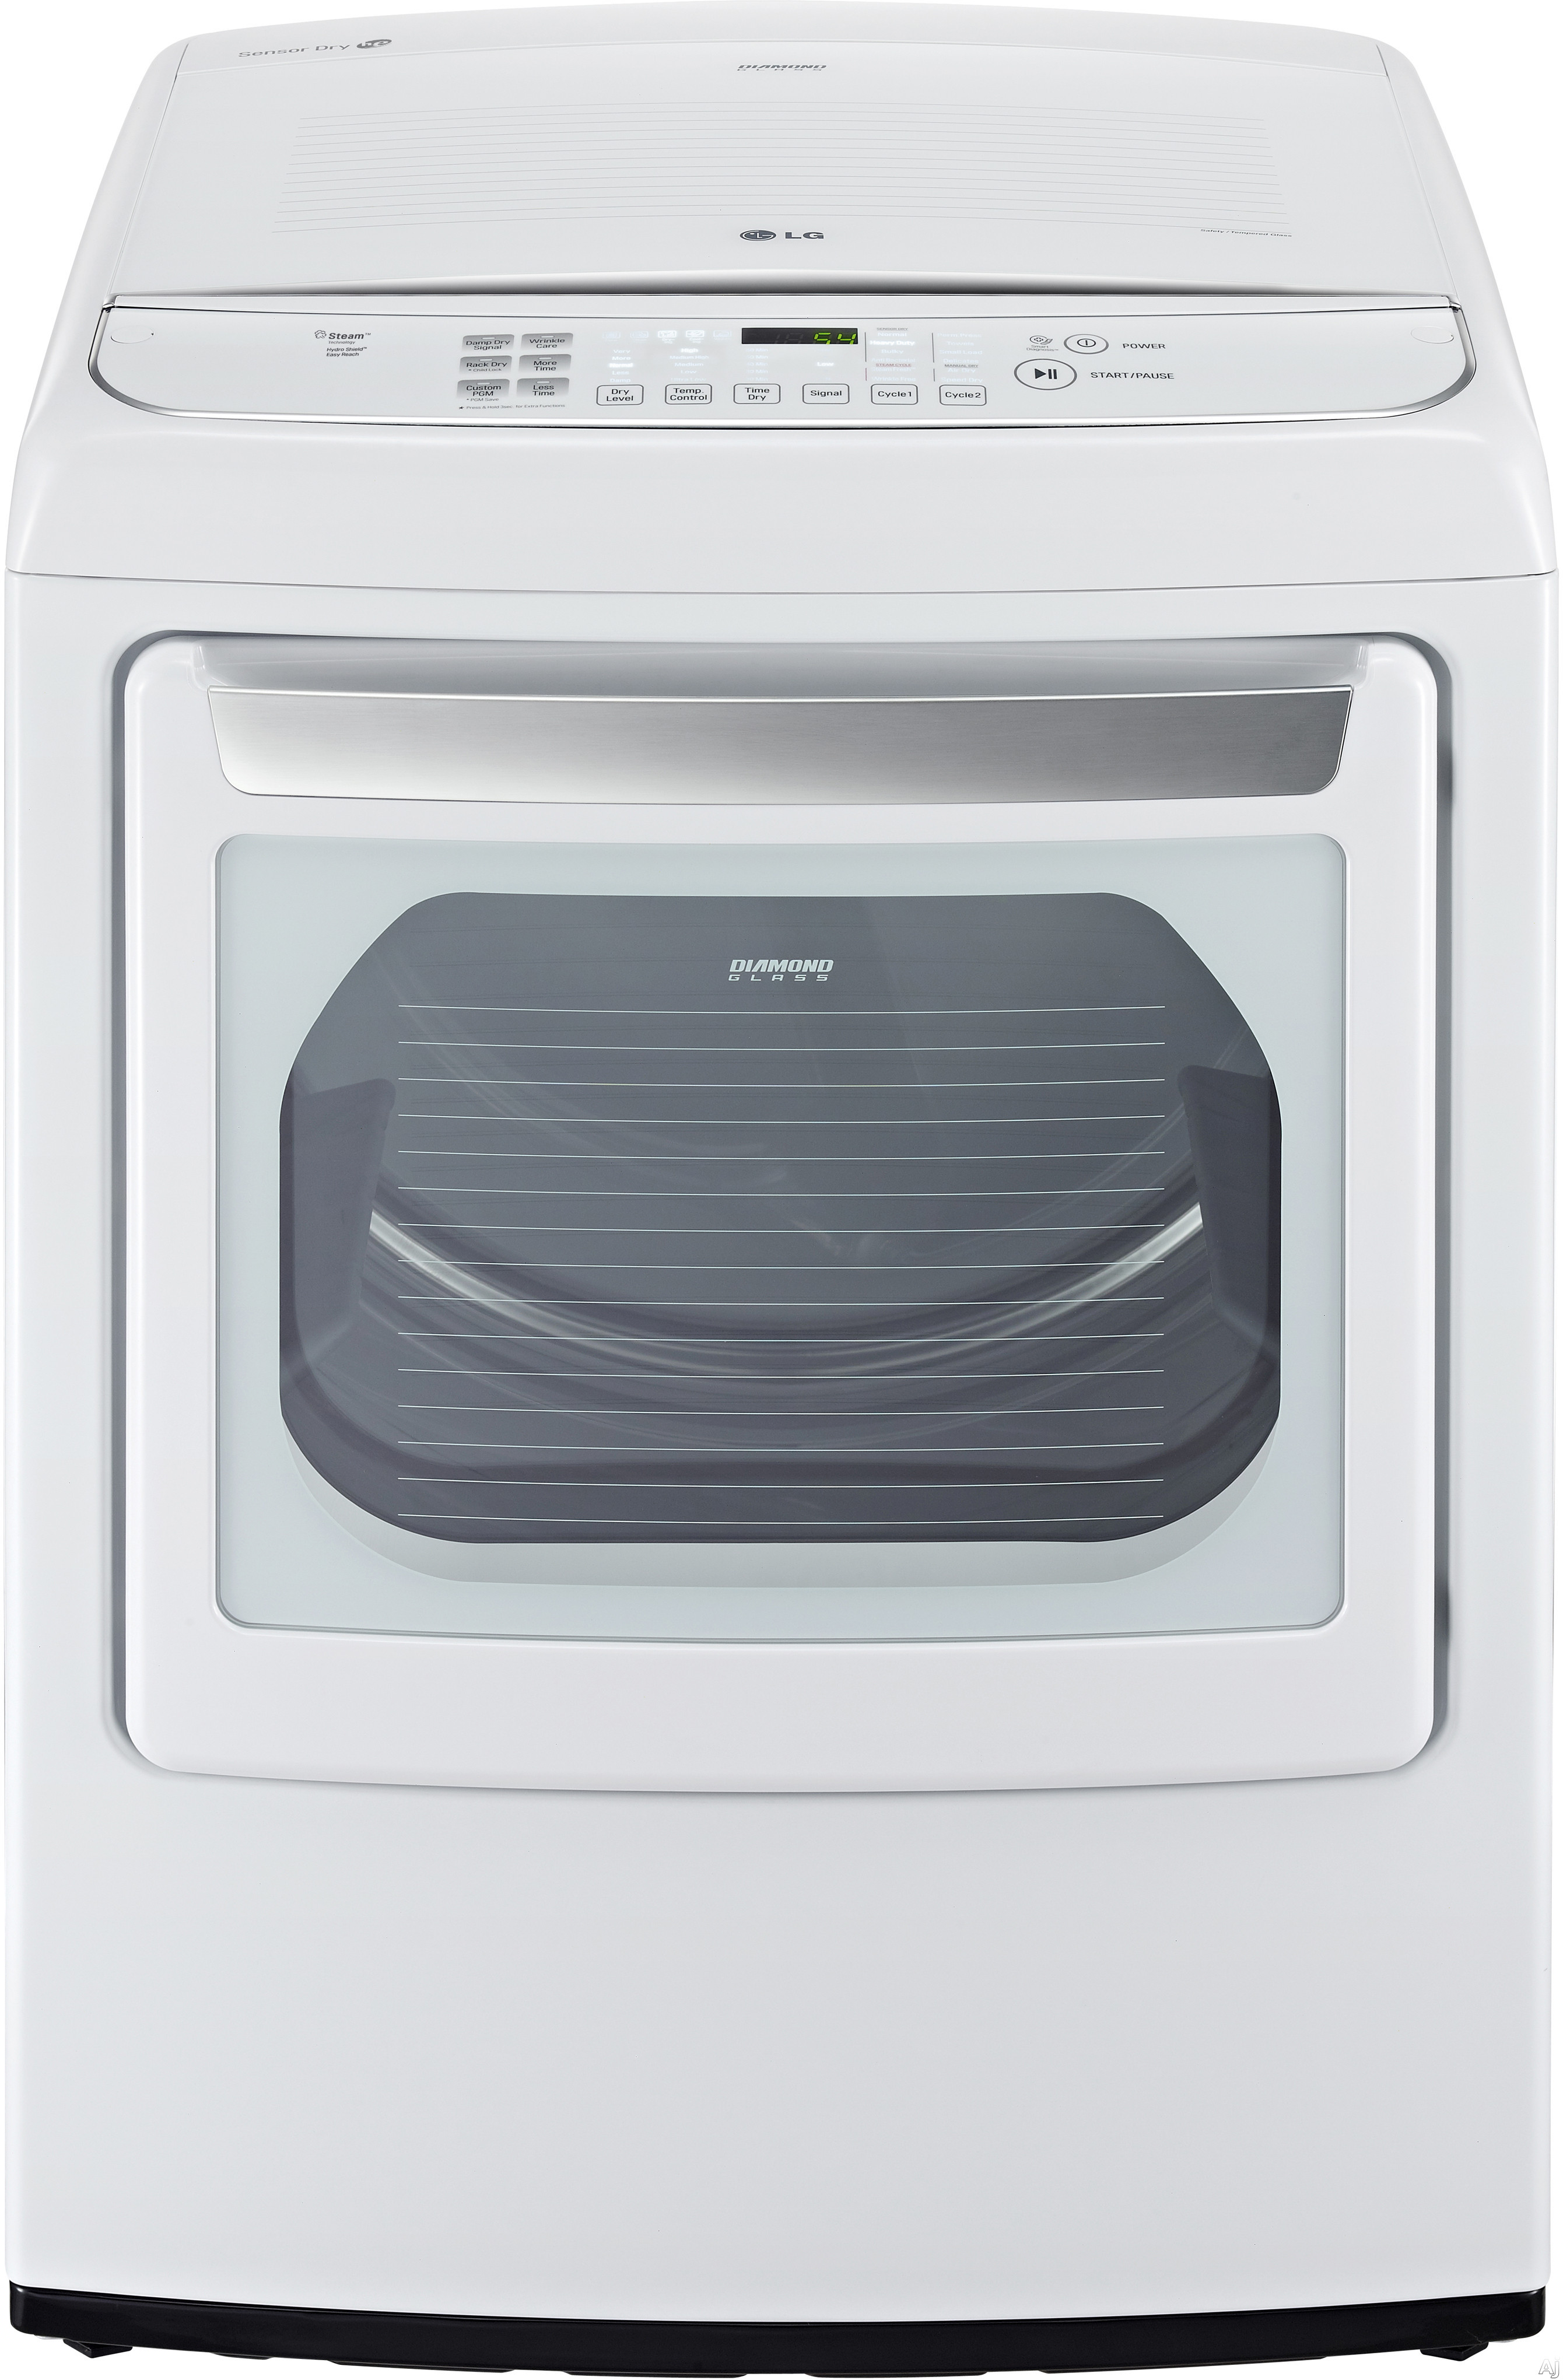 LG SteamDryer Series DLEY1701WE 27 Inch 7.4 cu. ft. Electric Dryer with 12 Dry Programs Steam EasyLoad Door Wrinkle Free Program Speed Dry Smart Diagnosis LoDecibel Quiet Operation Sensor Dry and ENER